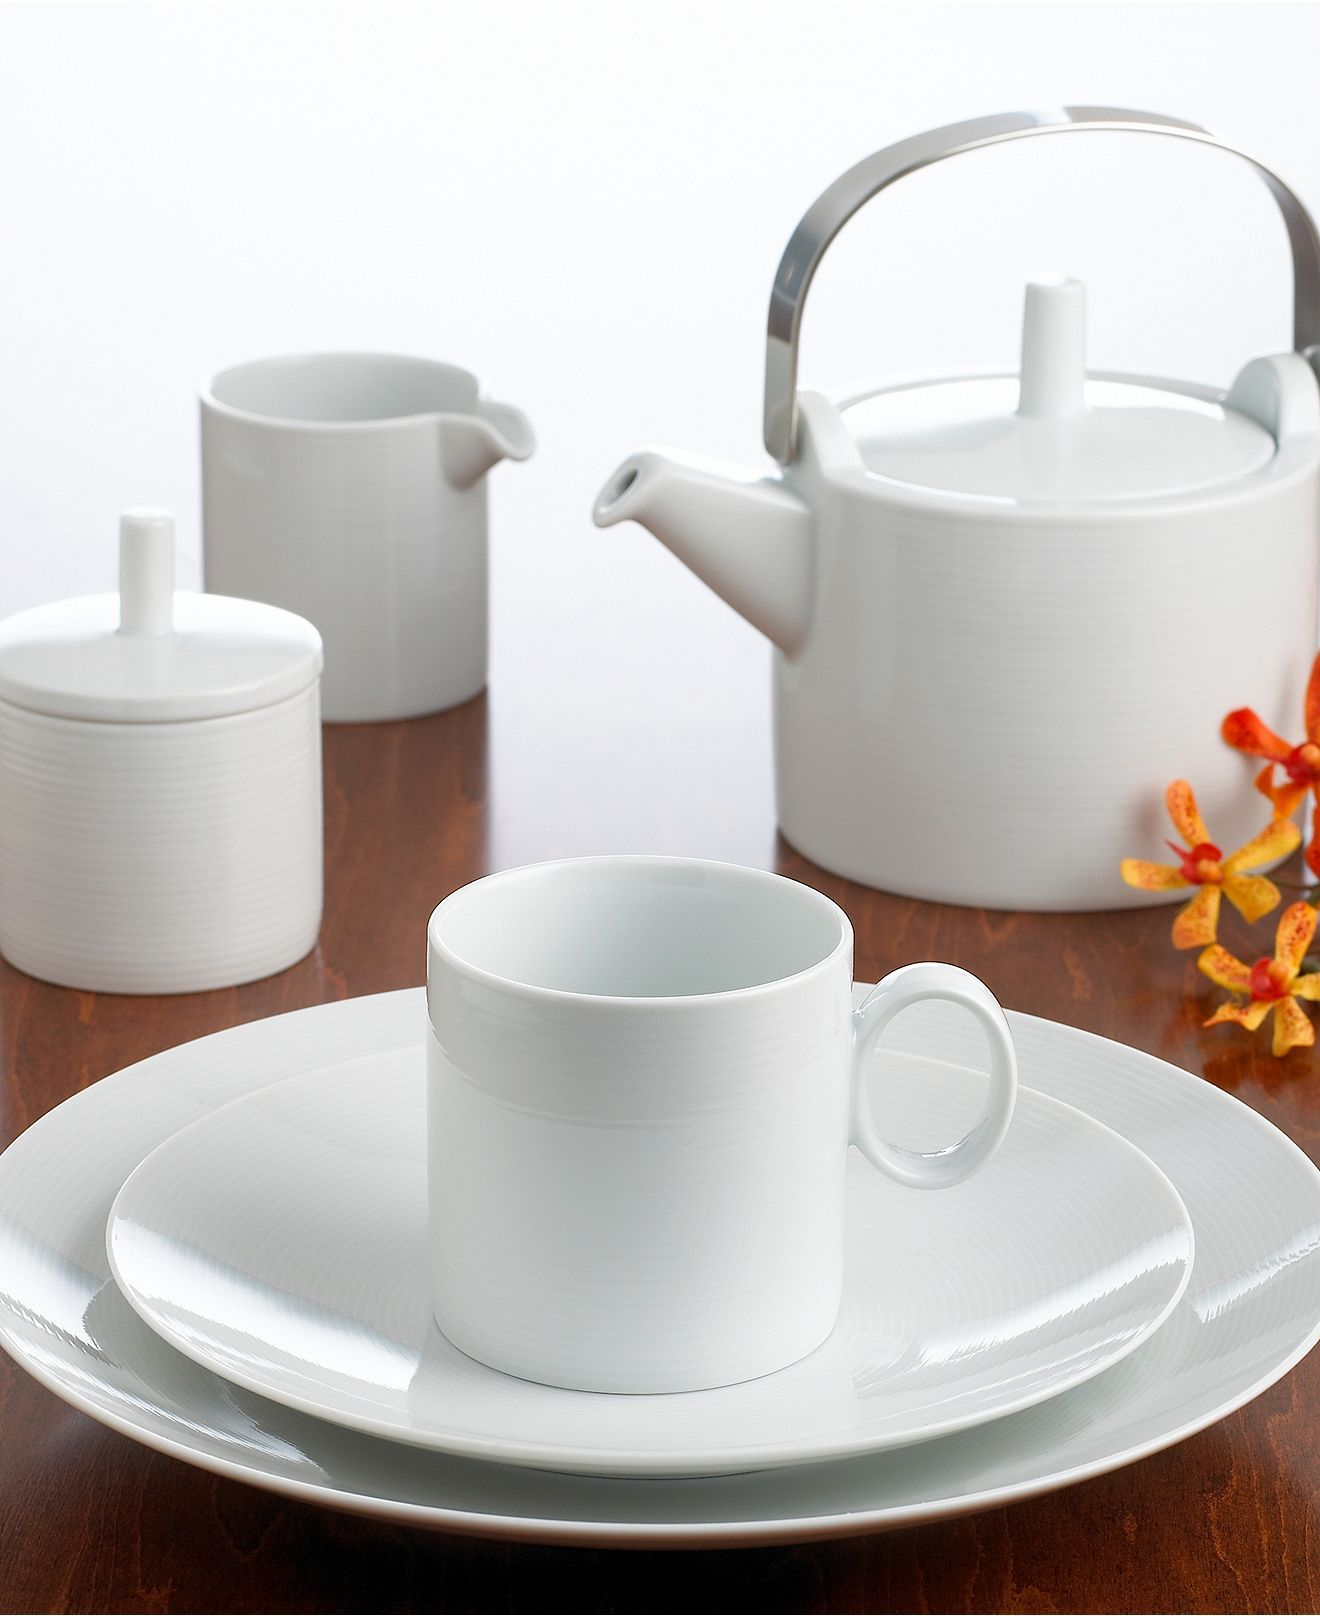 Thomas Rosenthal Loft Dinnerware Collection & Thomas Rosenthal Loft Dinnerware Collection | Dinnerware Lofts and ...